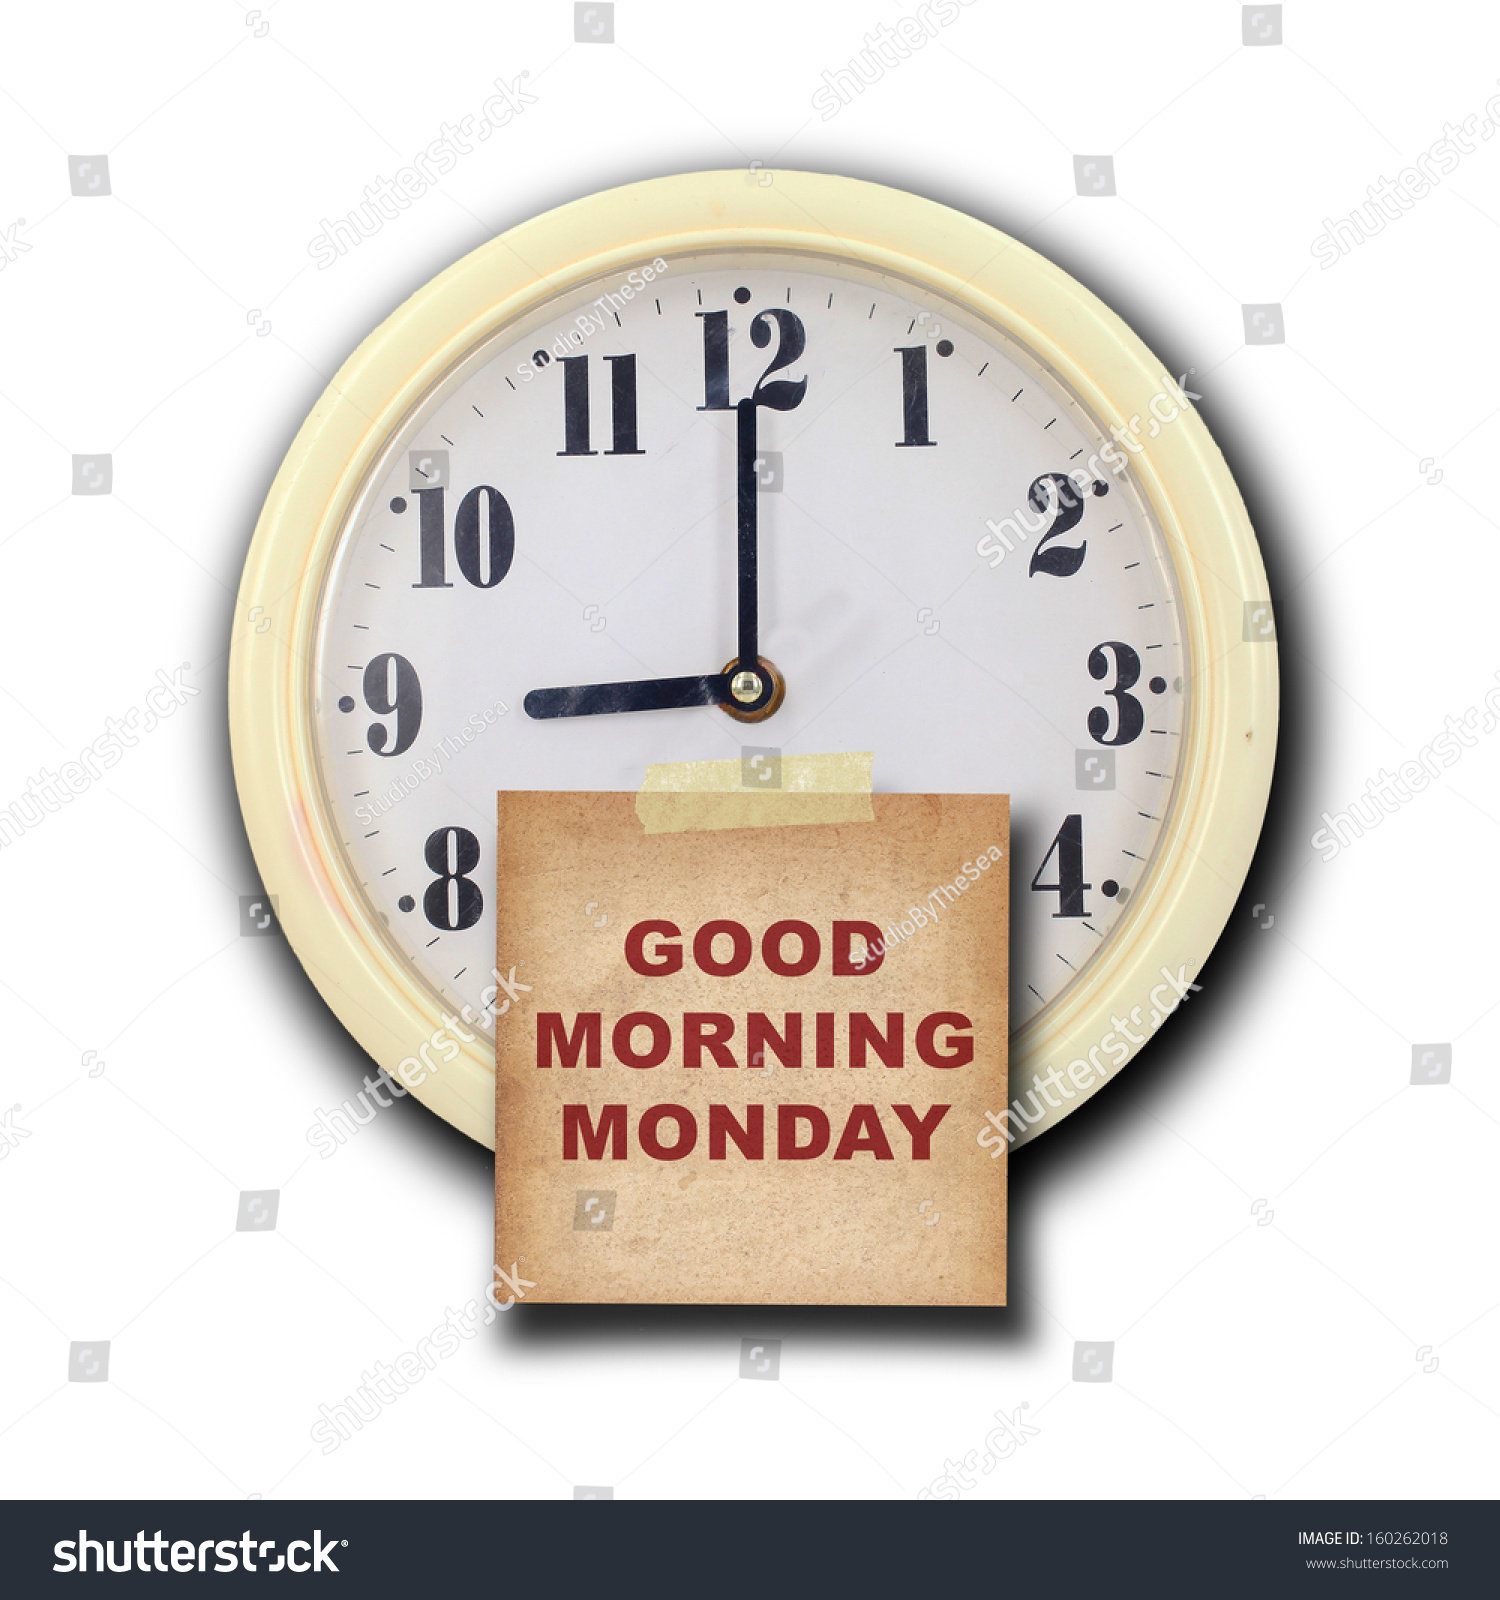 Nine oclock on wall clock old stock photo 160262018 shutterstock nine oclock on the wall clock with the old paper short note and text amipublicfo Gallery